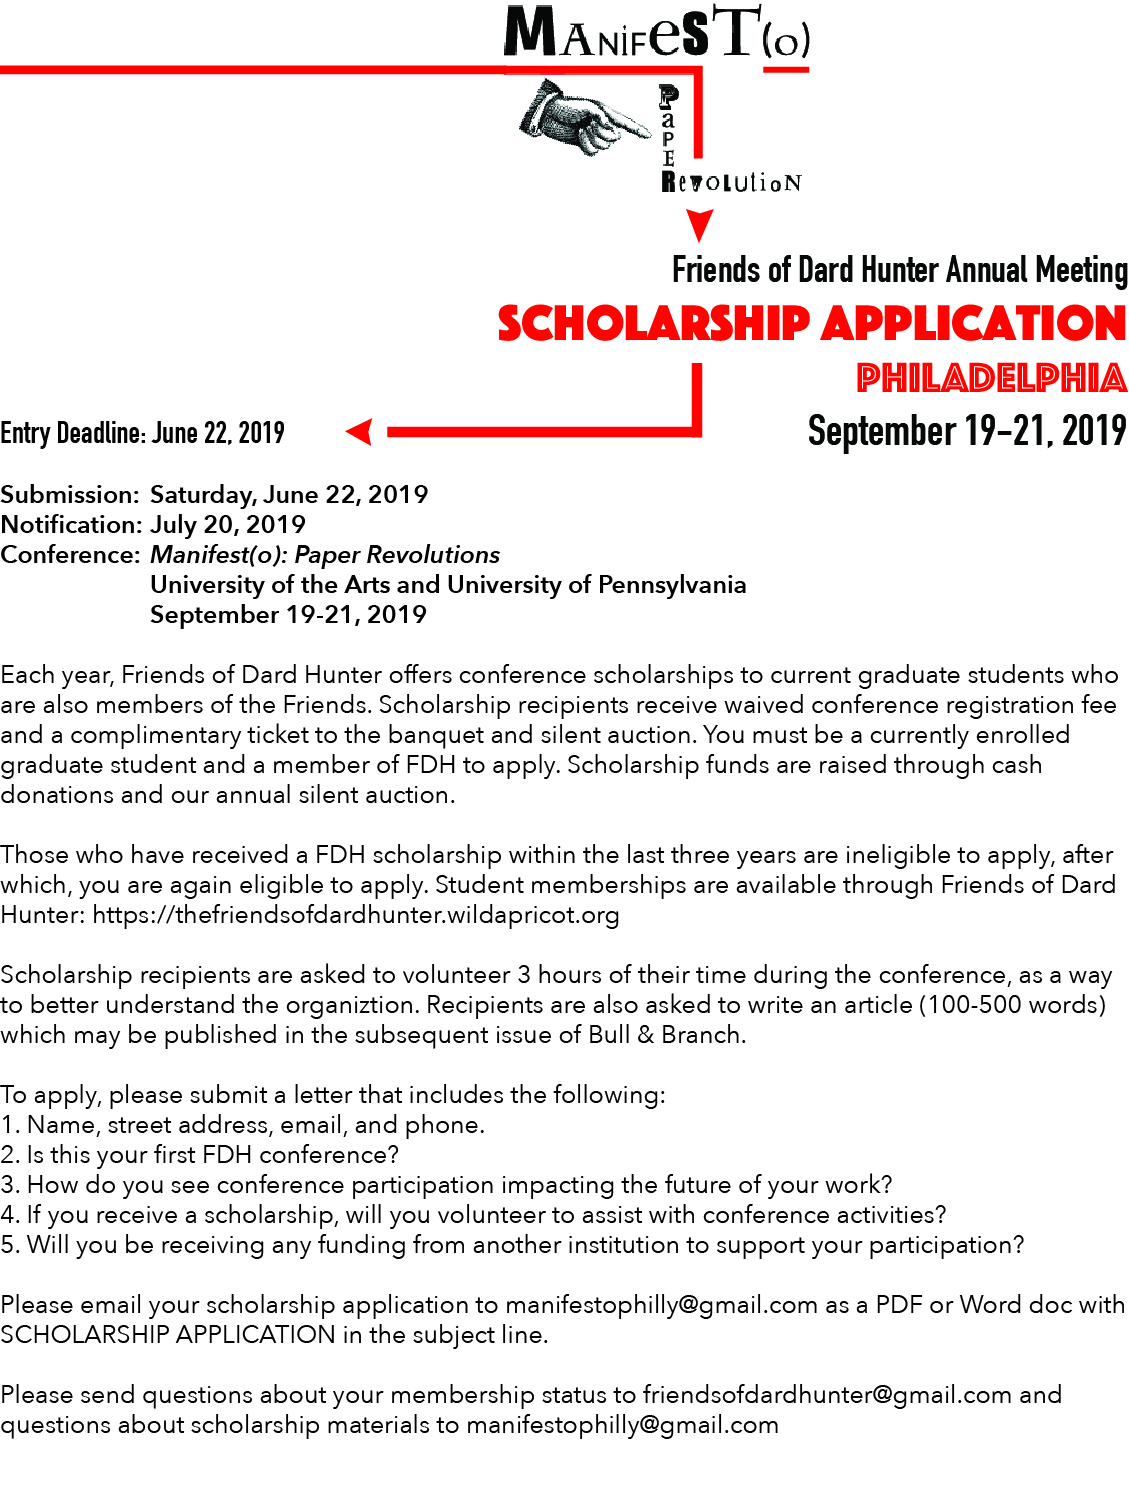 Manifesto-Philly-Scholarship-call.jpg